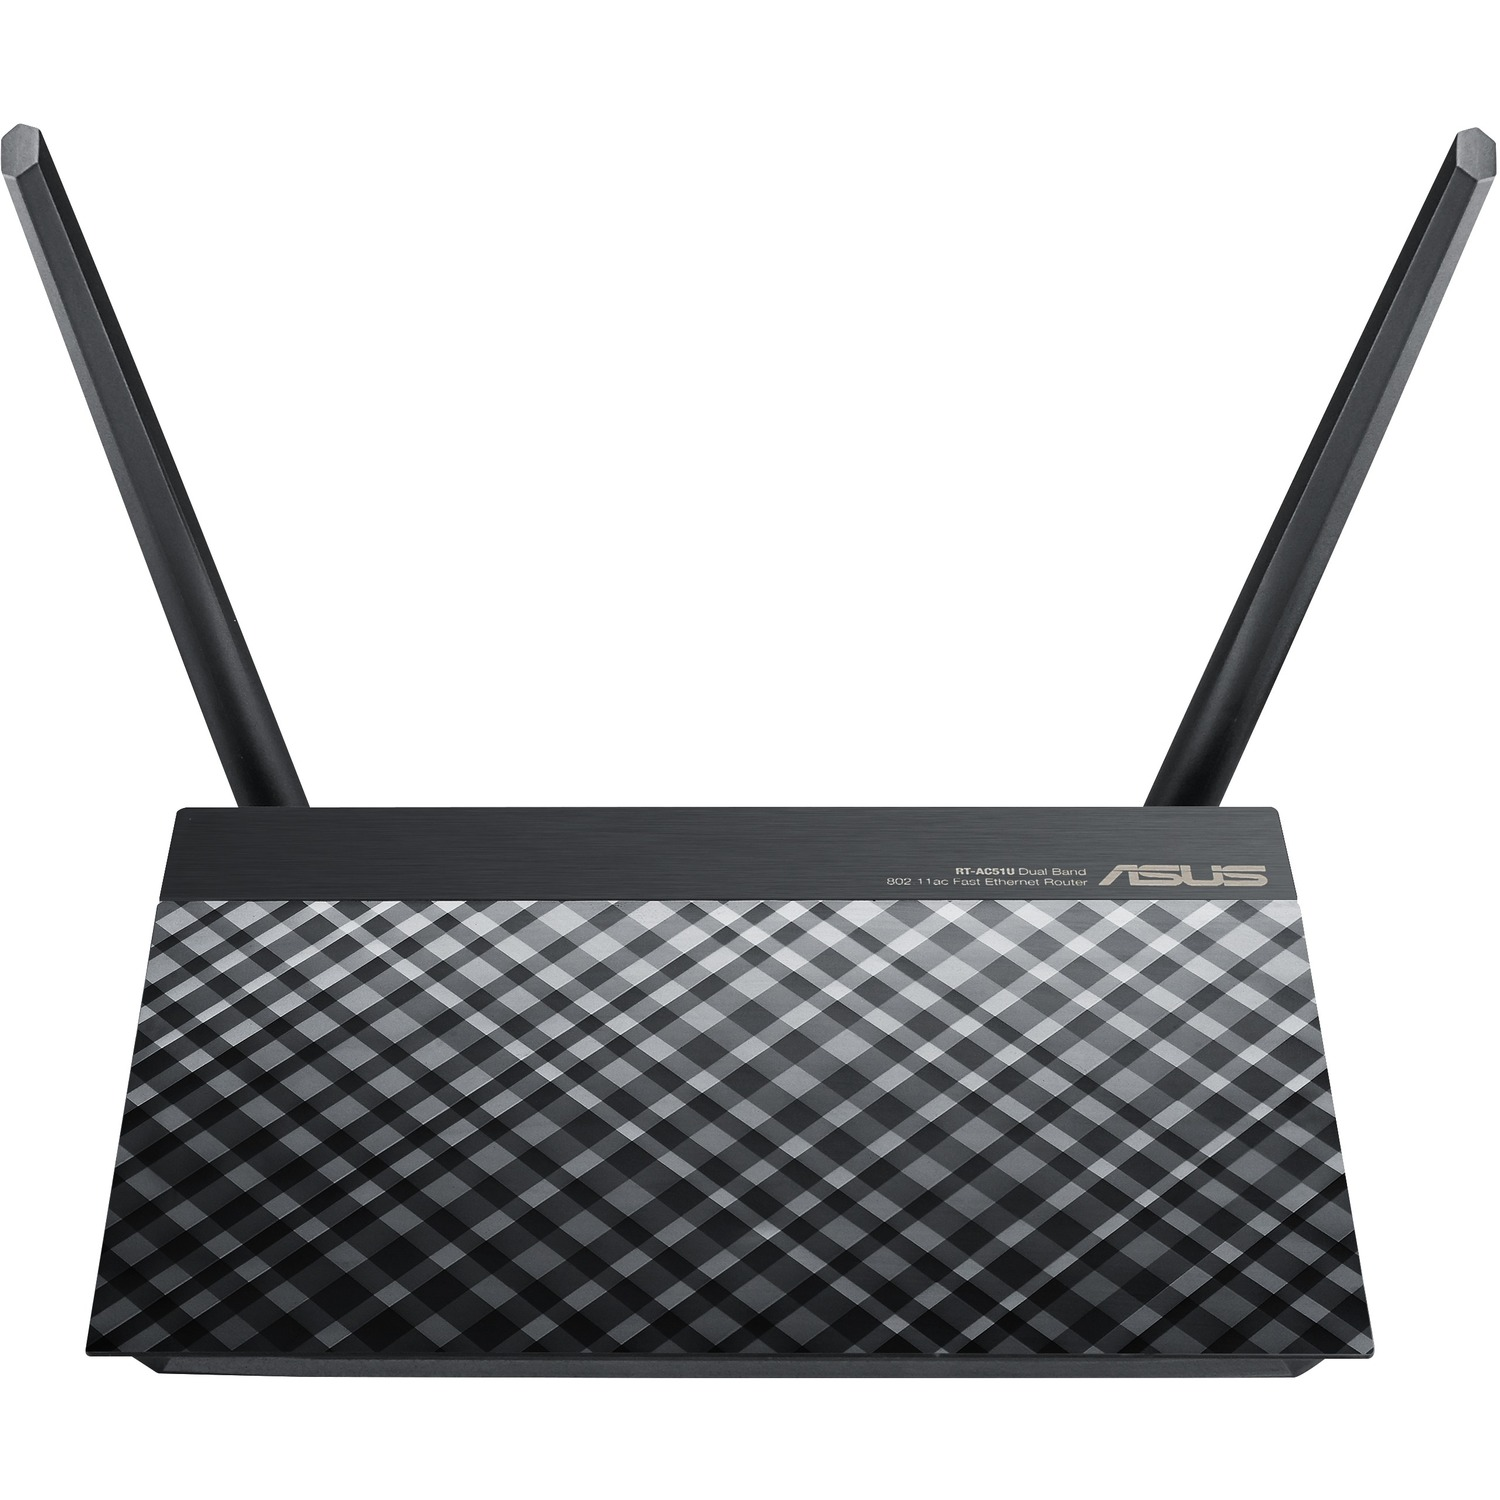 Asus RT-AC51U IEEE 802.11ac Ethernet Wireless Router